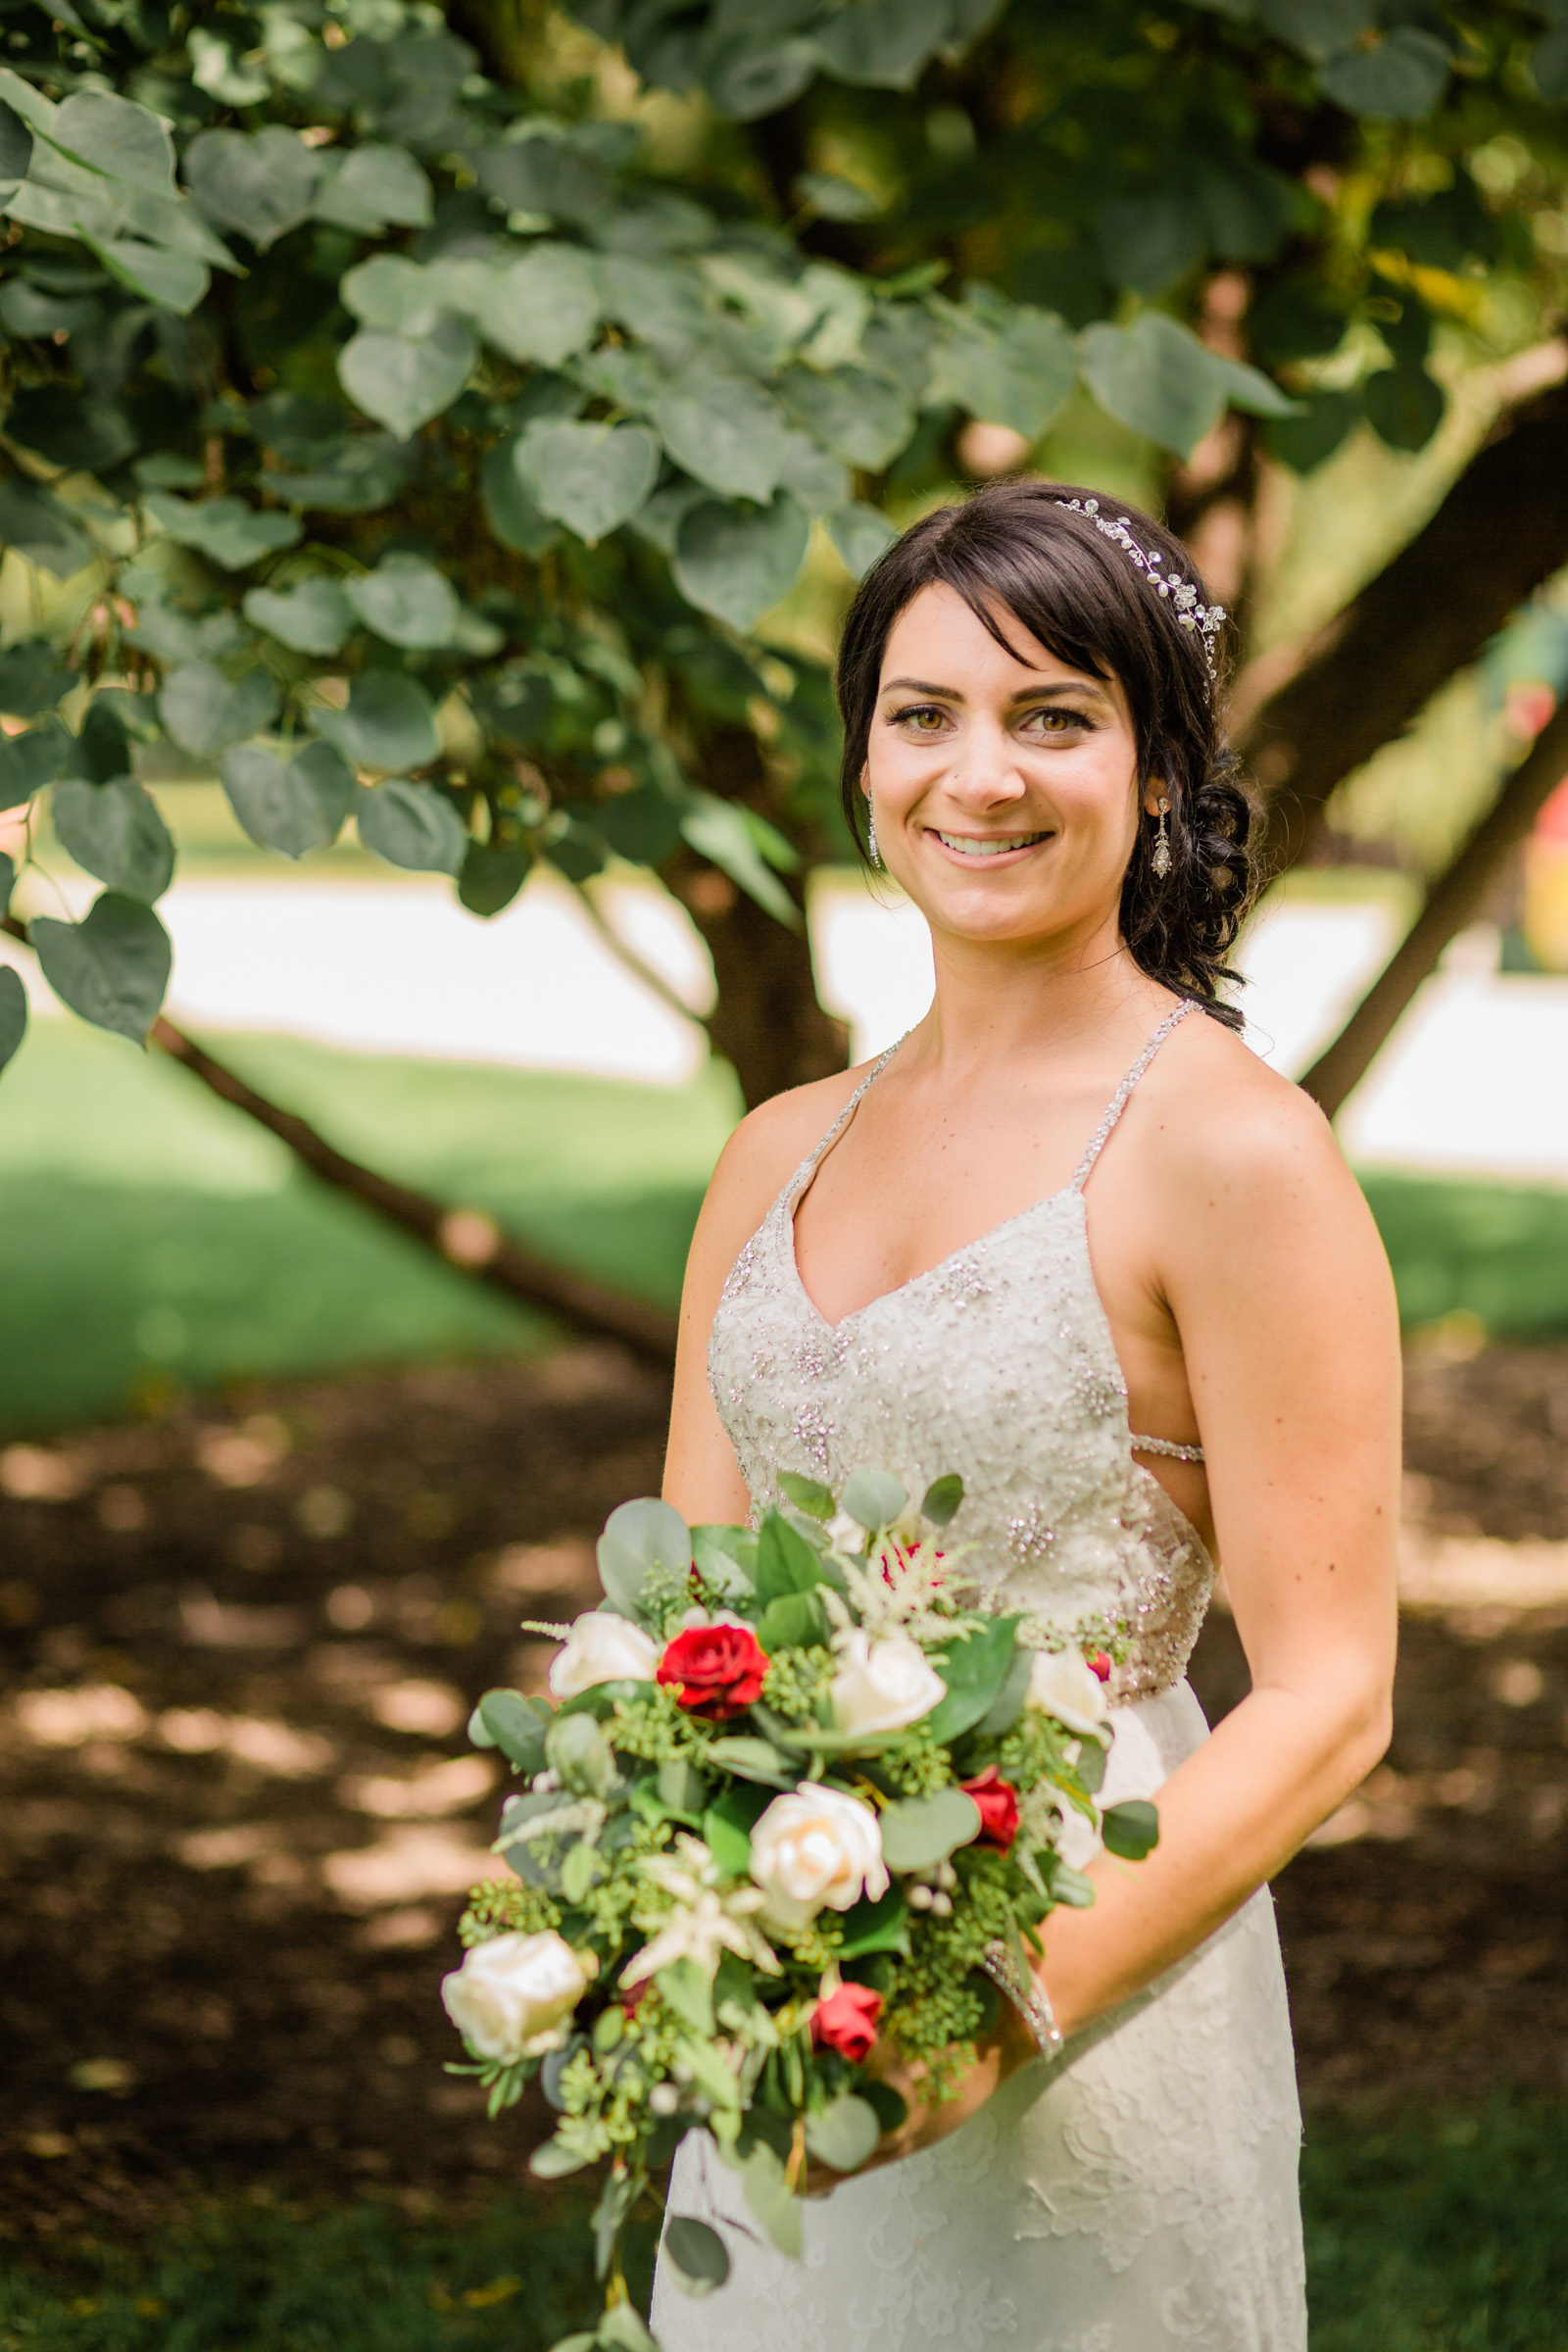 bride getting ready outdoors holding flowers Des Moines Iowa